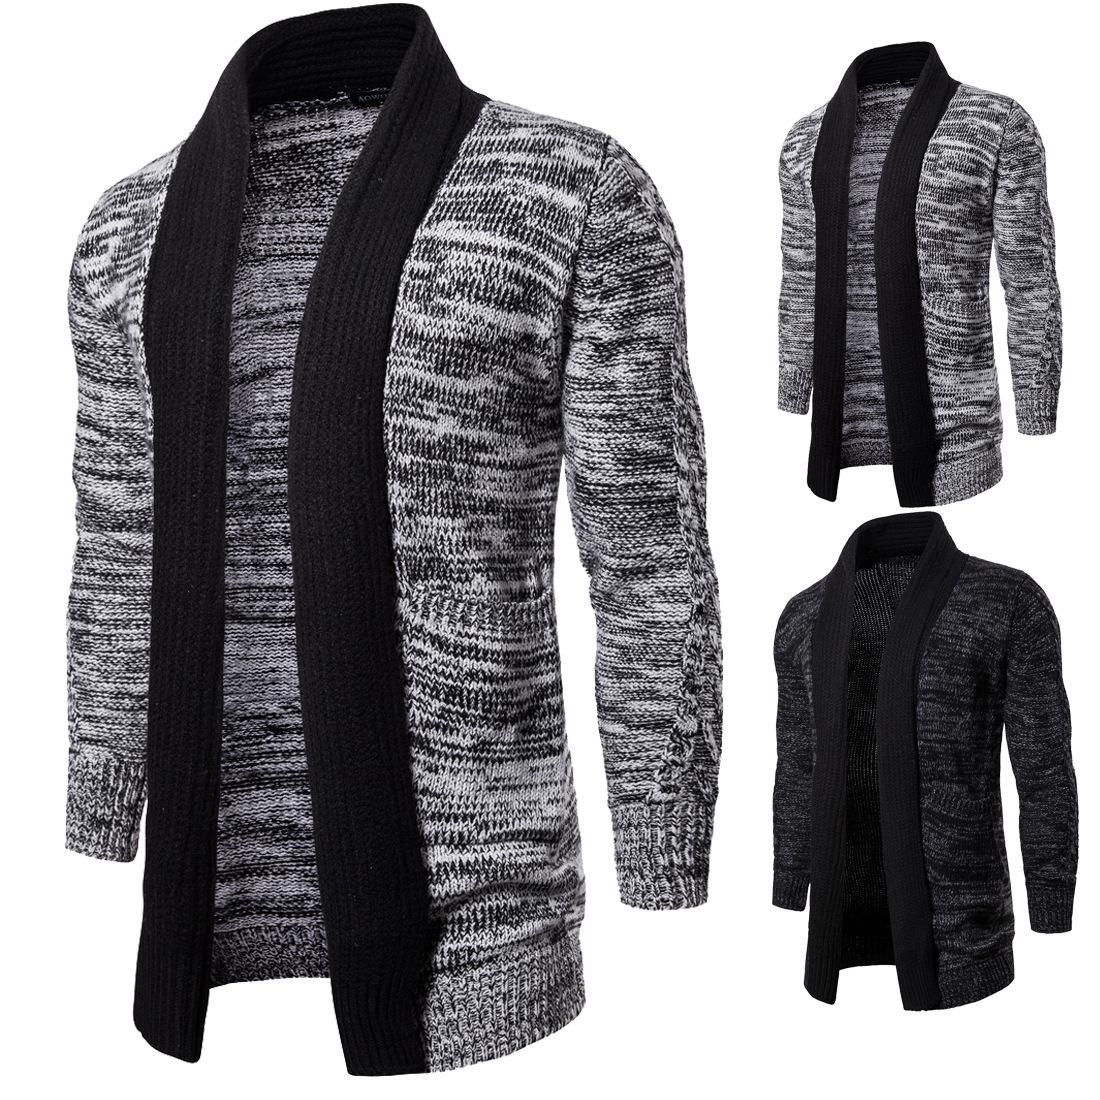 Thick Sweater Suéter For men Casual Mid Long Long Sleeve Lapel Neck Knitted Cardigan Men Sweater Slim Winter Pull pour homme J1811184